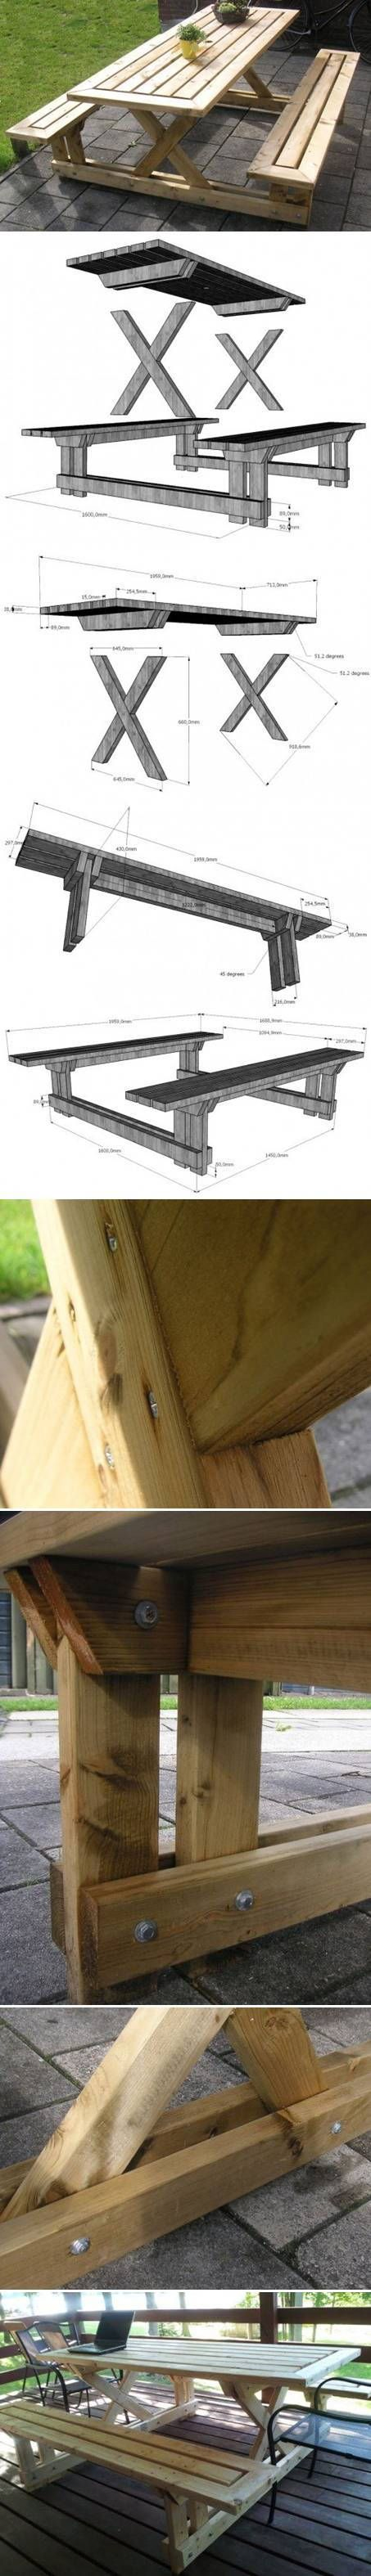 DIY Garden Bench and Table DIY Projects